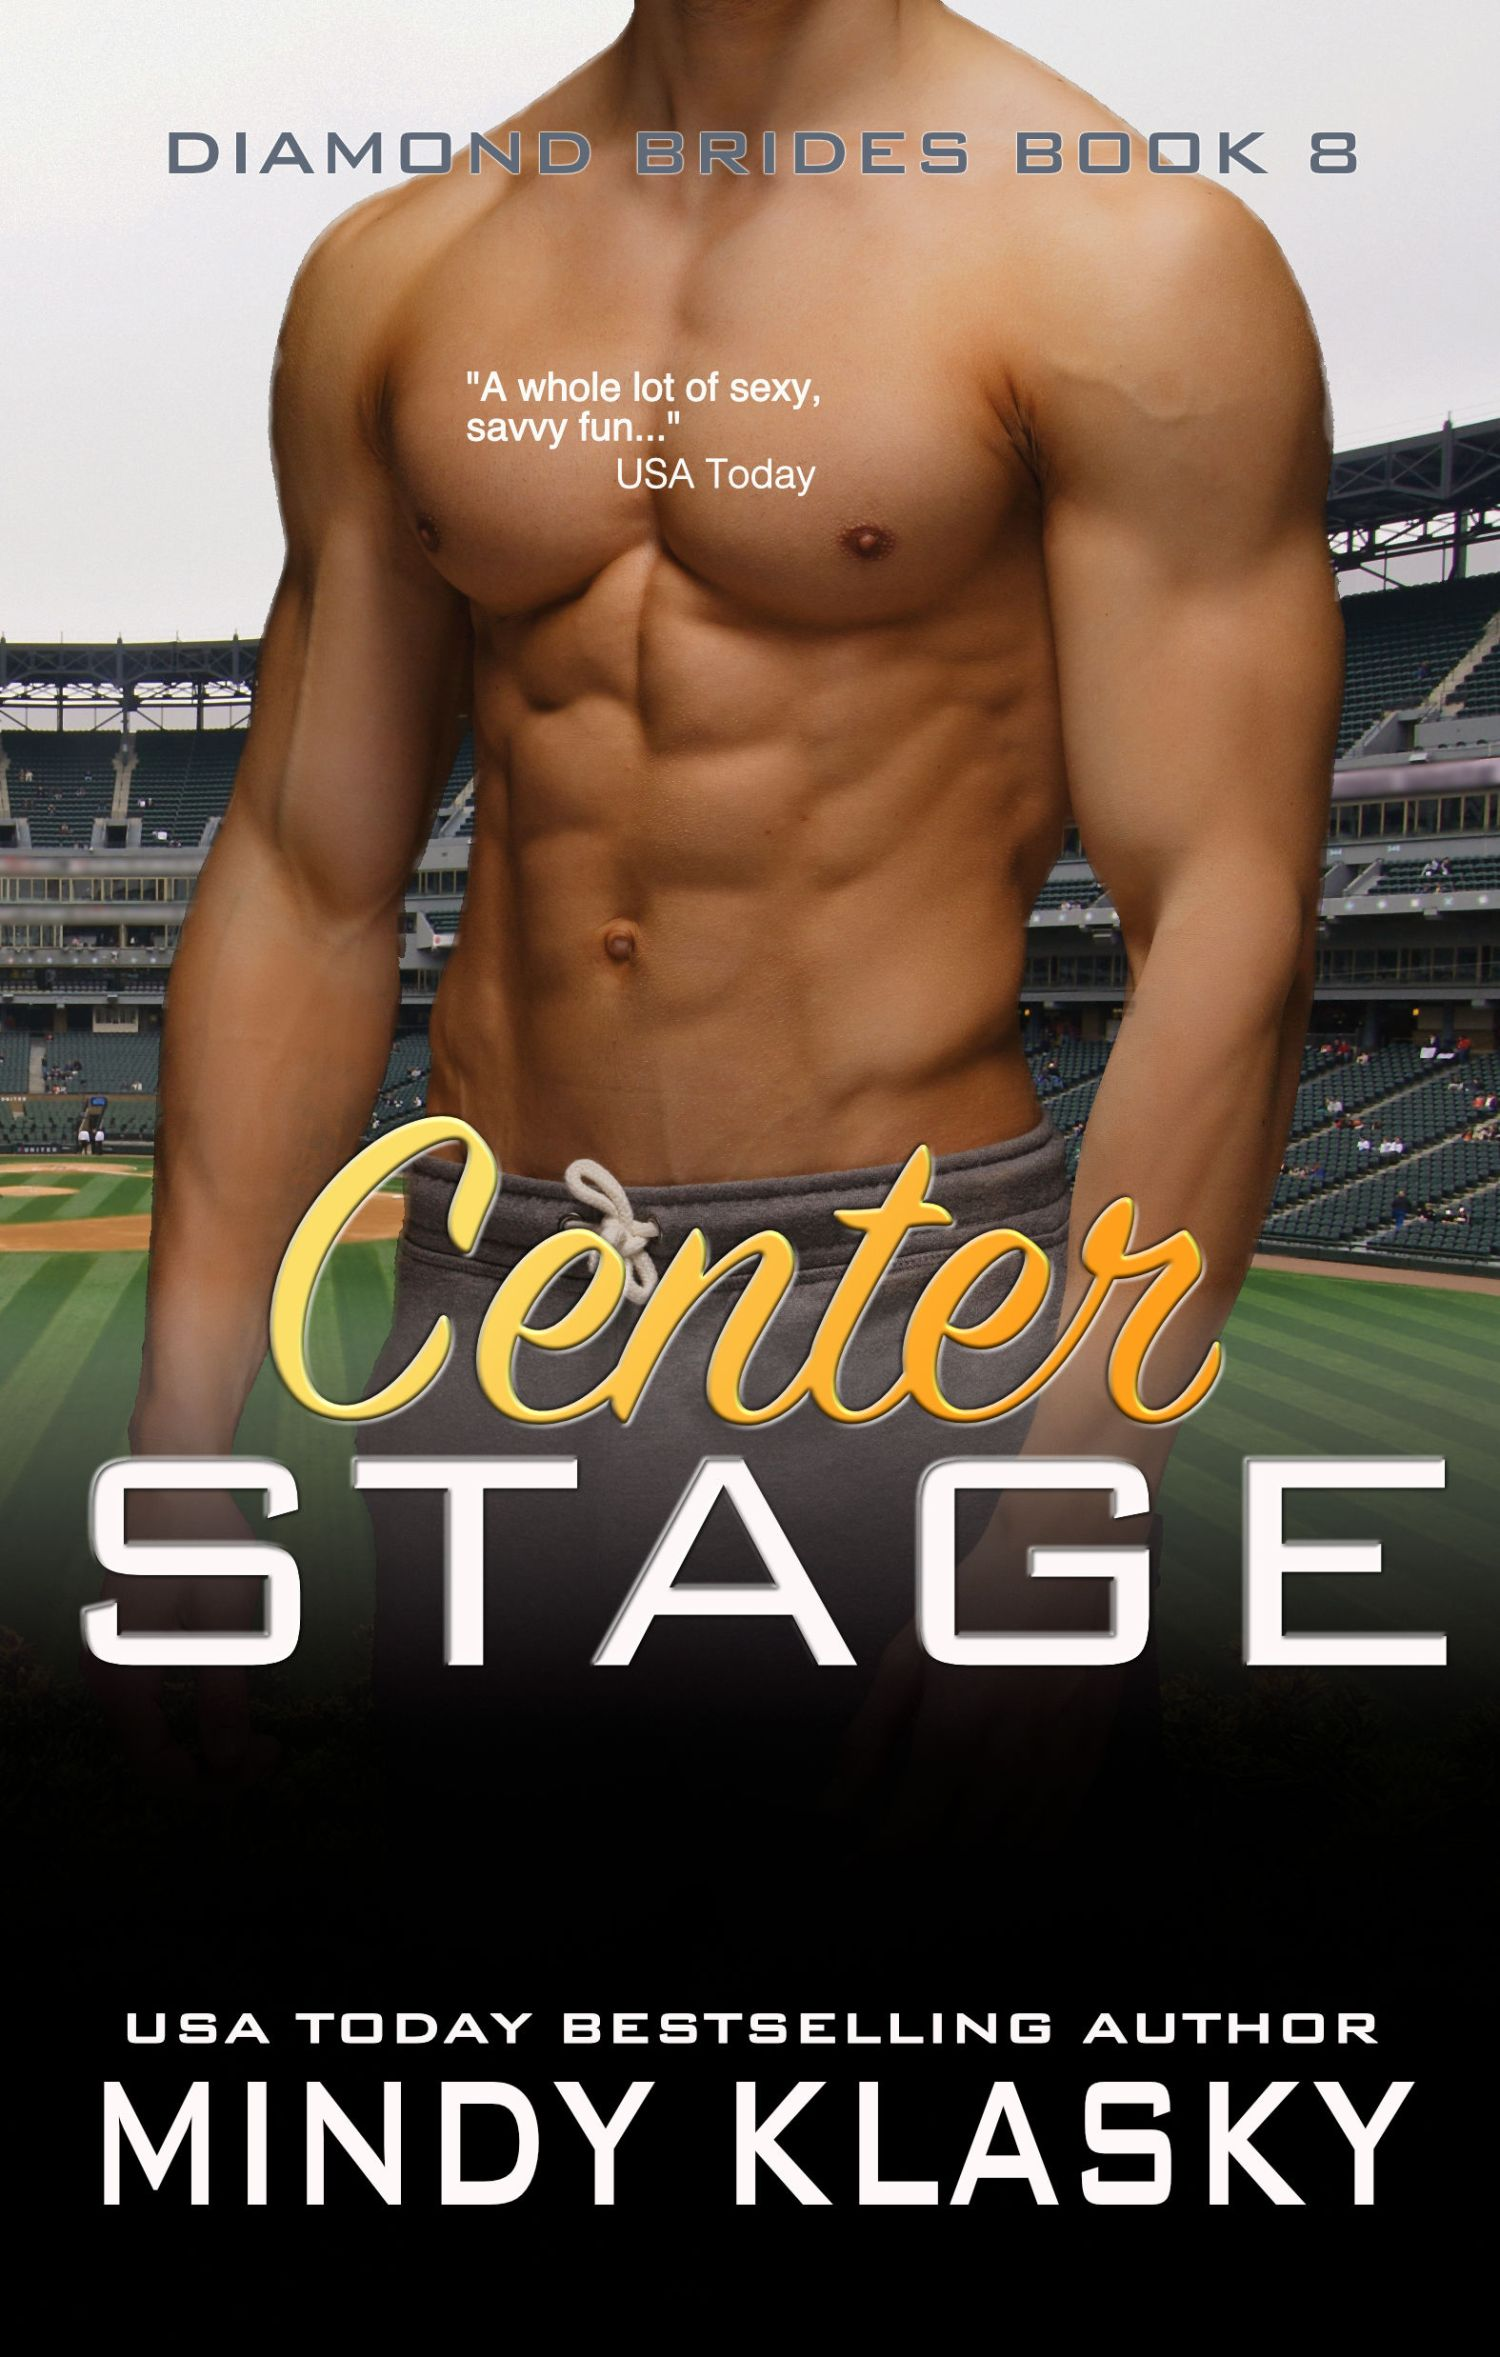 Center Stage by Mindy Klasky